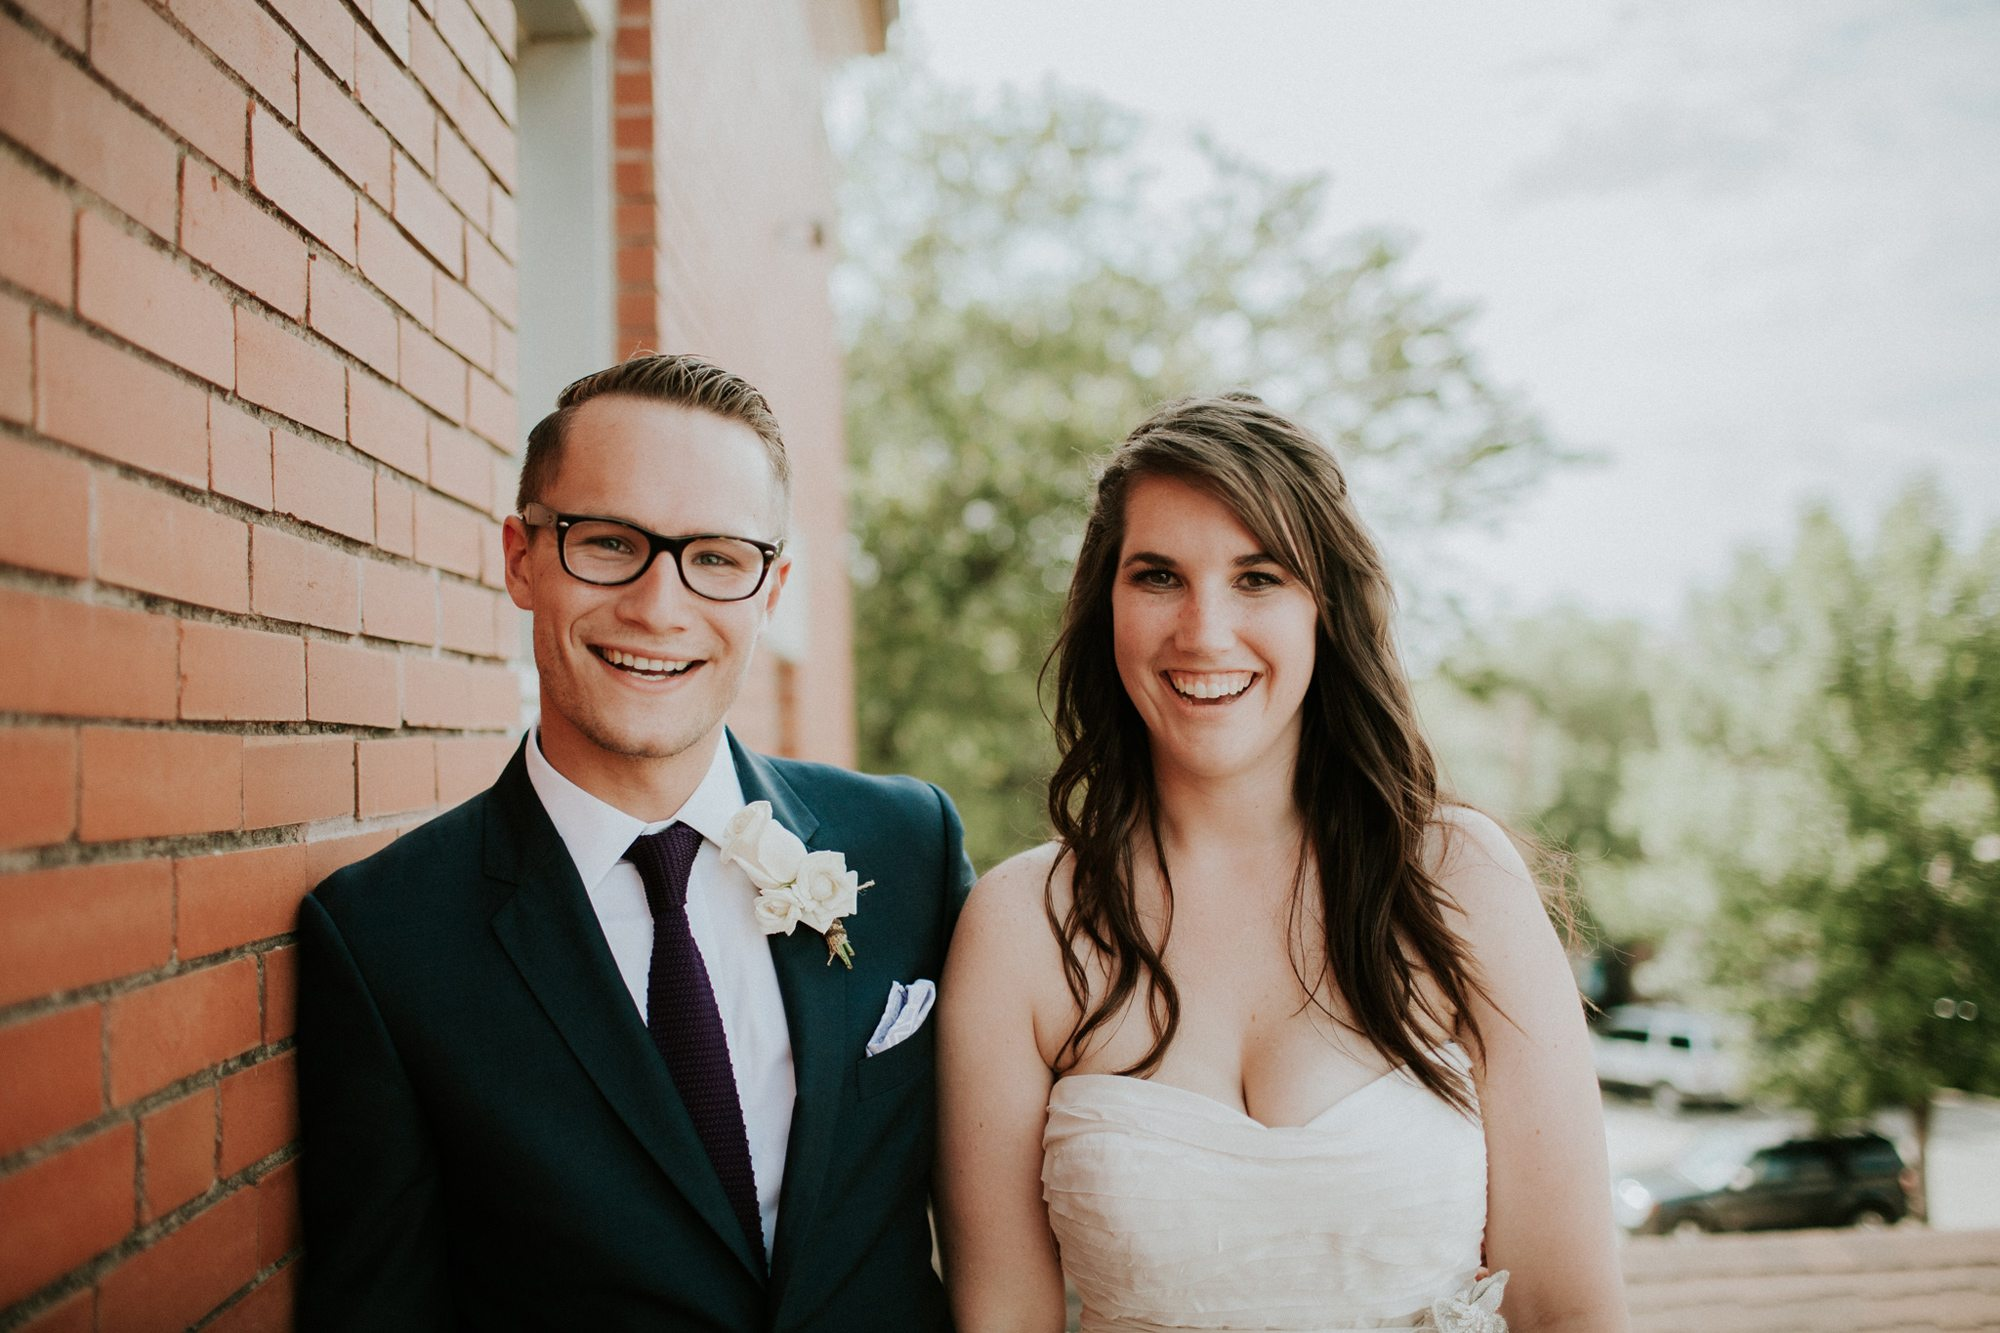 596-winnipeg-wedding-photographer